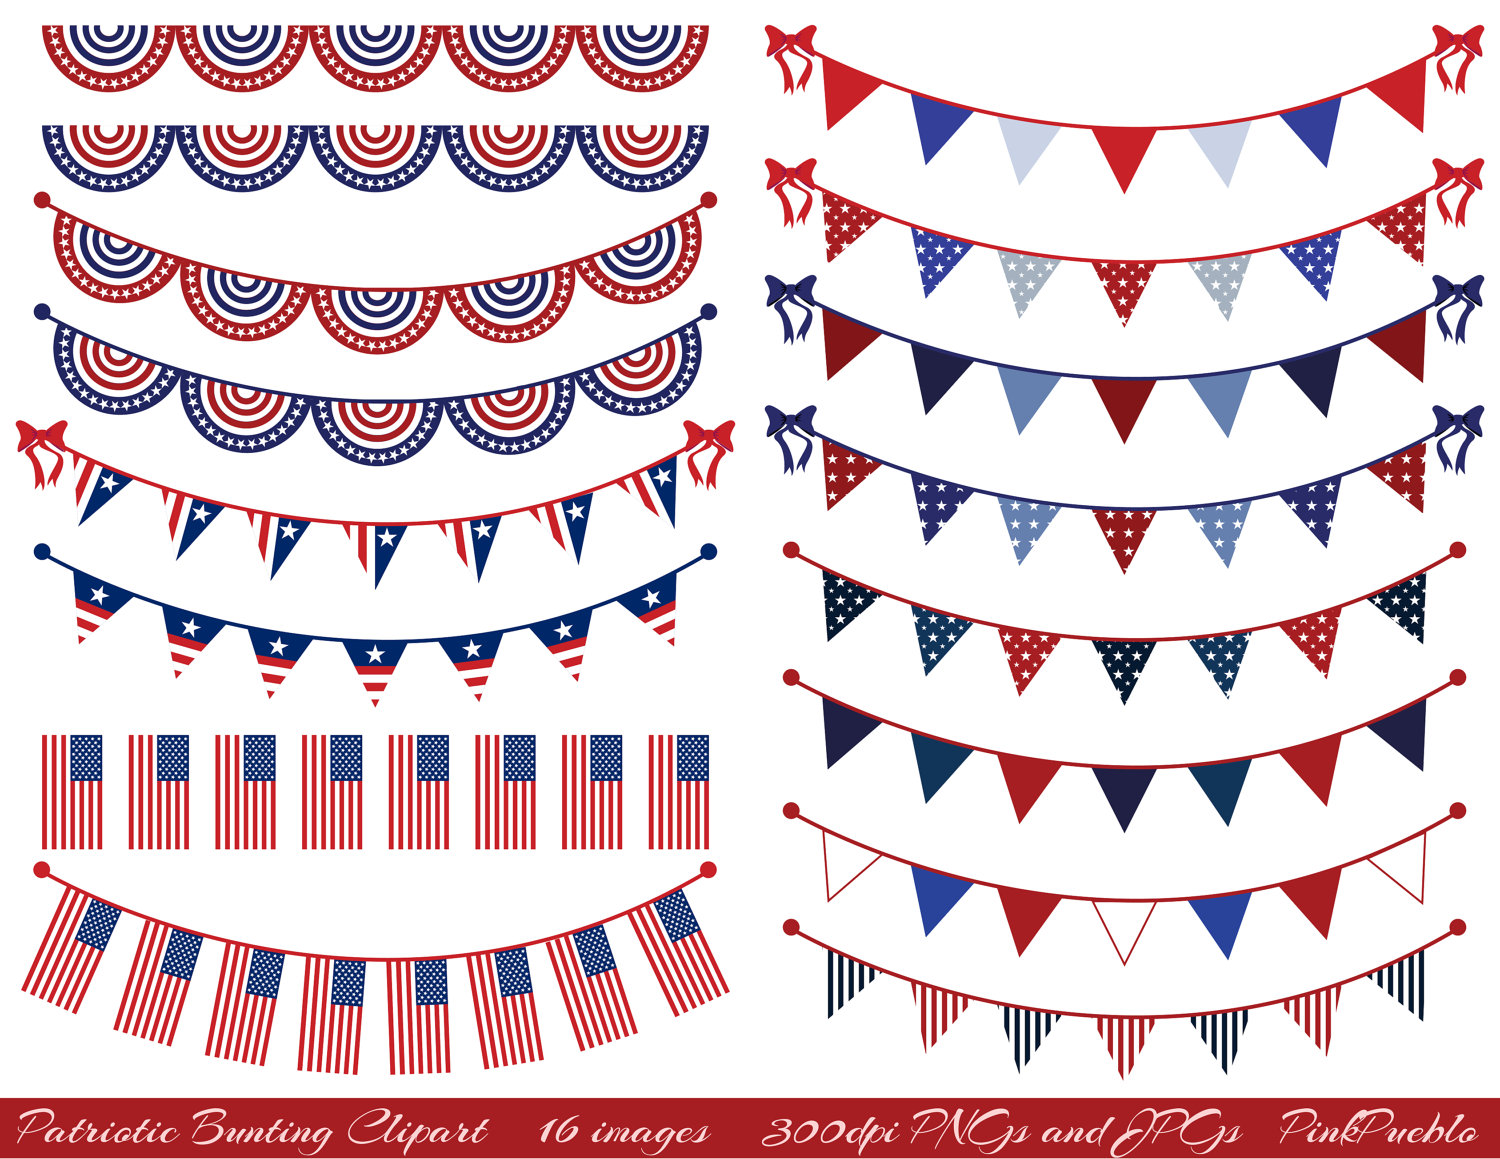 Pendent clipart patriotic banner Commercial Art Bunting Clipart Clip